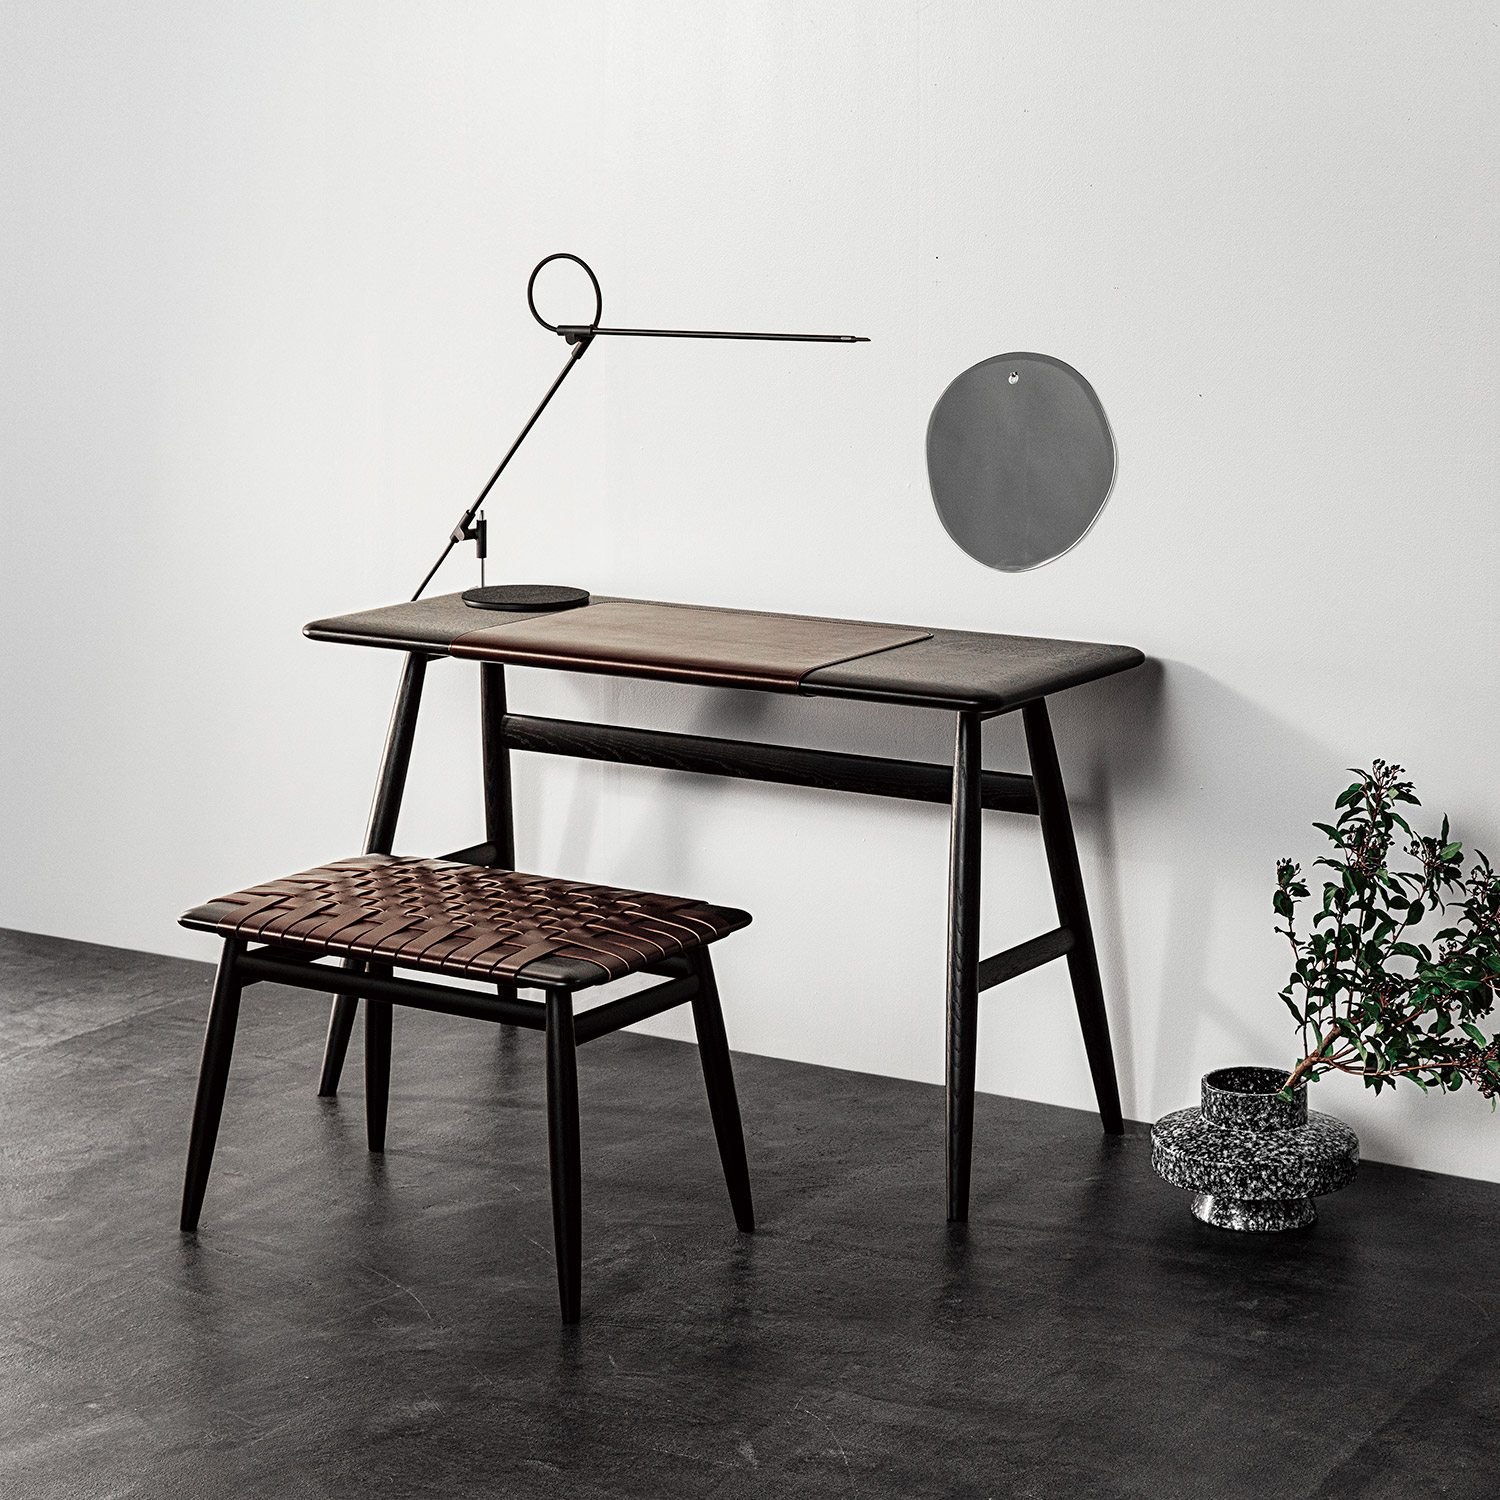 Modern minimal black wooden desk and stool, concrete floor